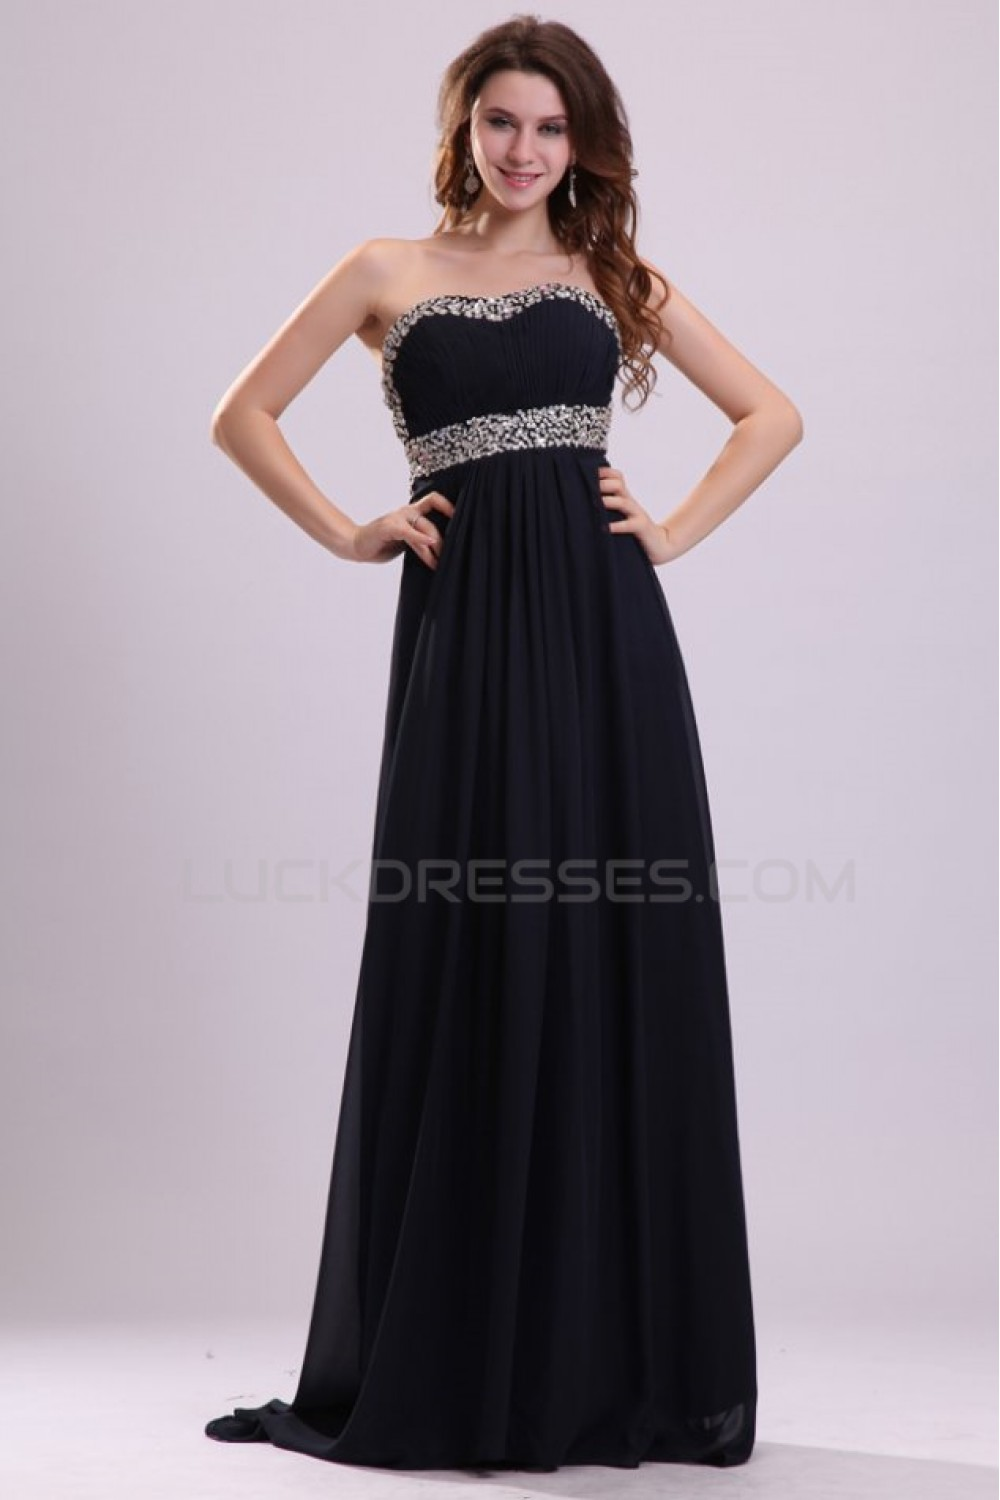 Sweetheart long beaded chiffon prom evening formal party dresses empire sweetheart long beaded chiffon prom evening formal party dressesmaternity evening dresses ed010011 ombrellifo Choice Image